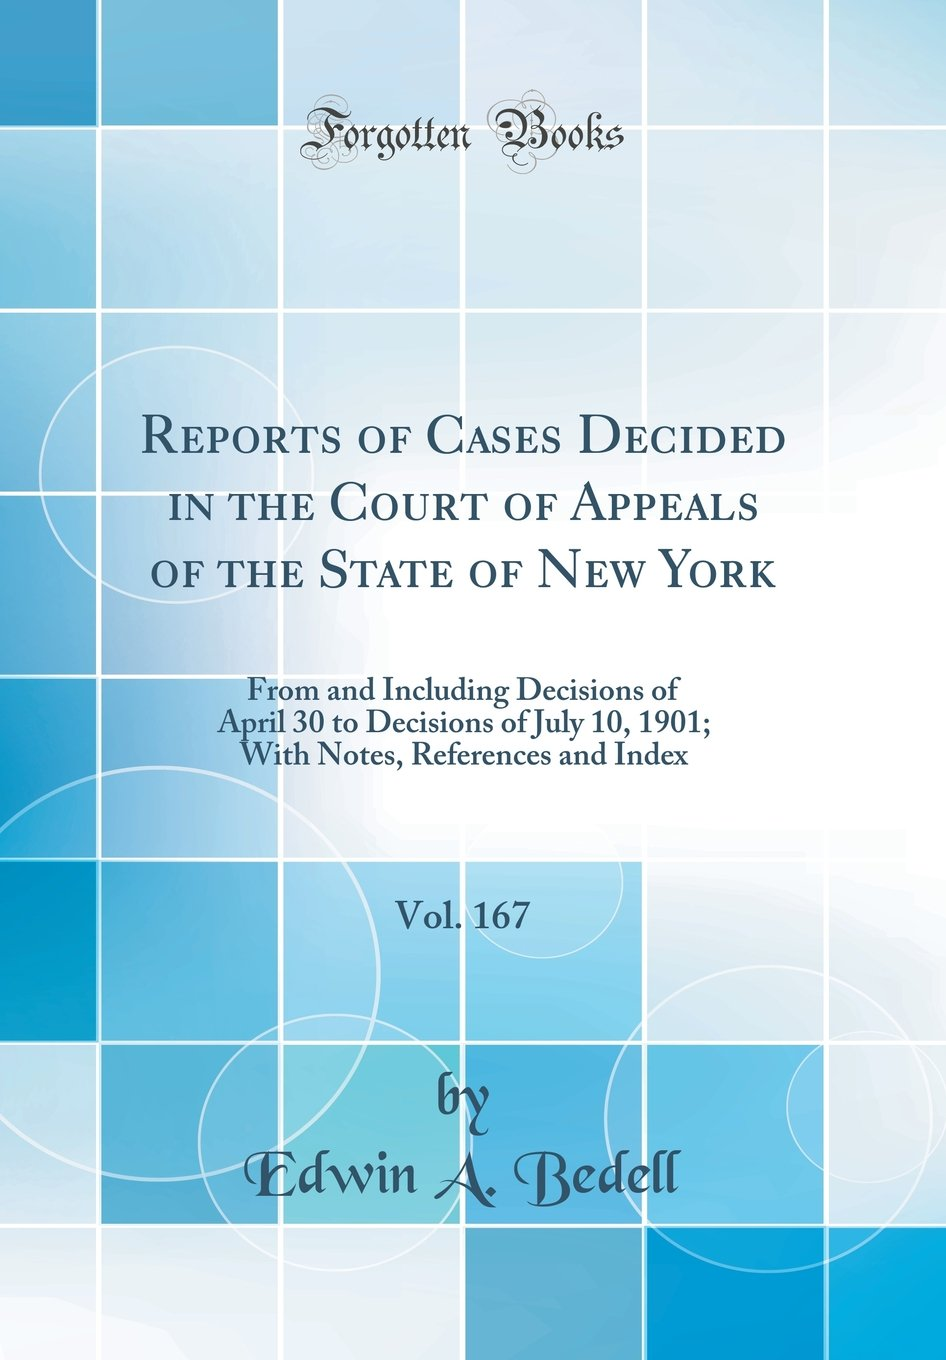 Reports of Cases Decided in the Court of Appeals of the State of New York, Vol. 167: From and Including Decisions of April 30 to Decisions of July 10, ... Notes, References and Index (Classic Reprint) PDF